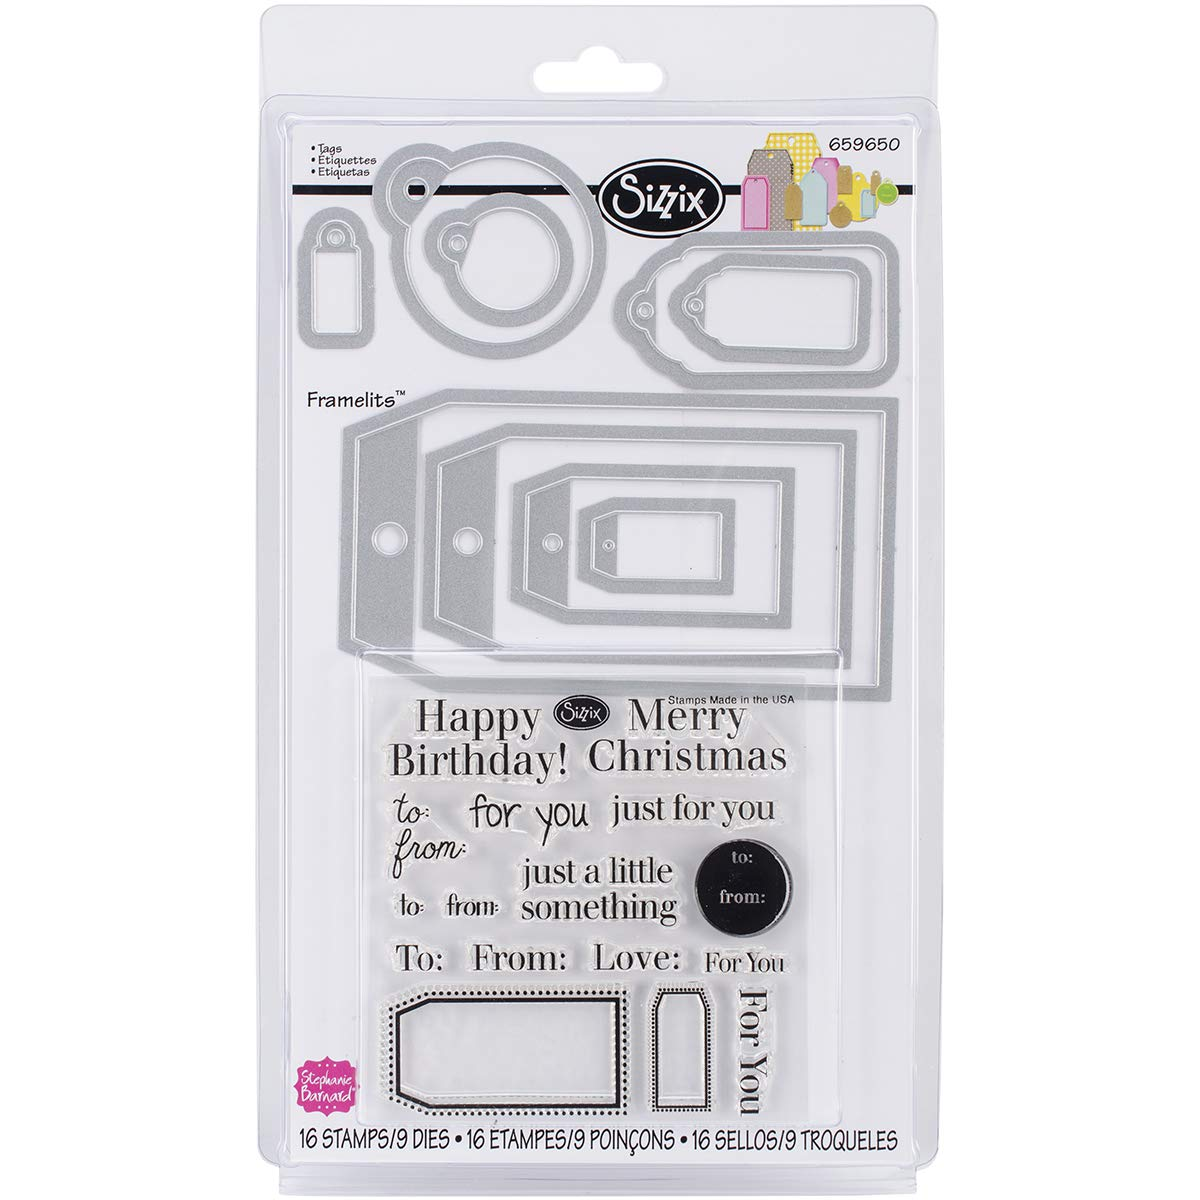 Sizzix Framelits Die and Clear Acrylic Stamp Set (6 Pack)